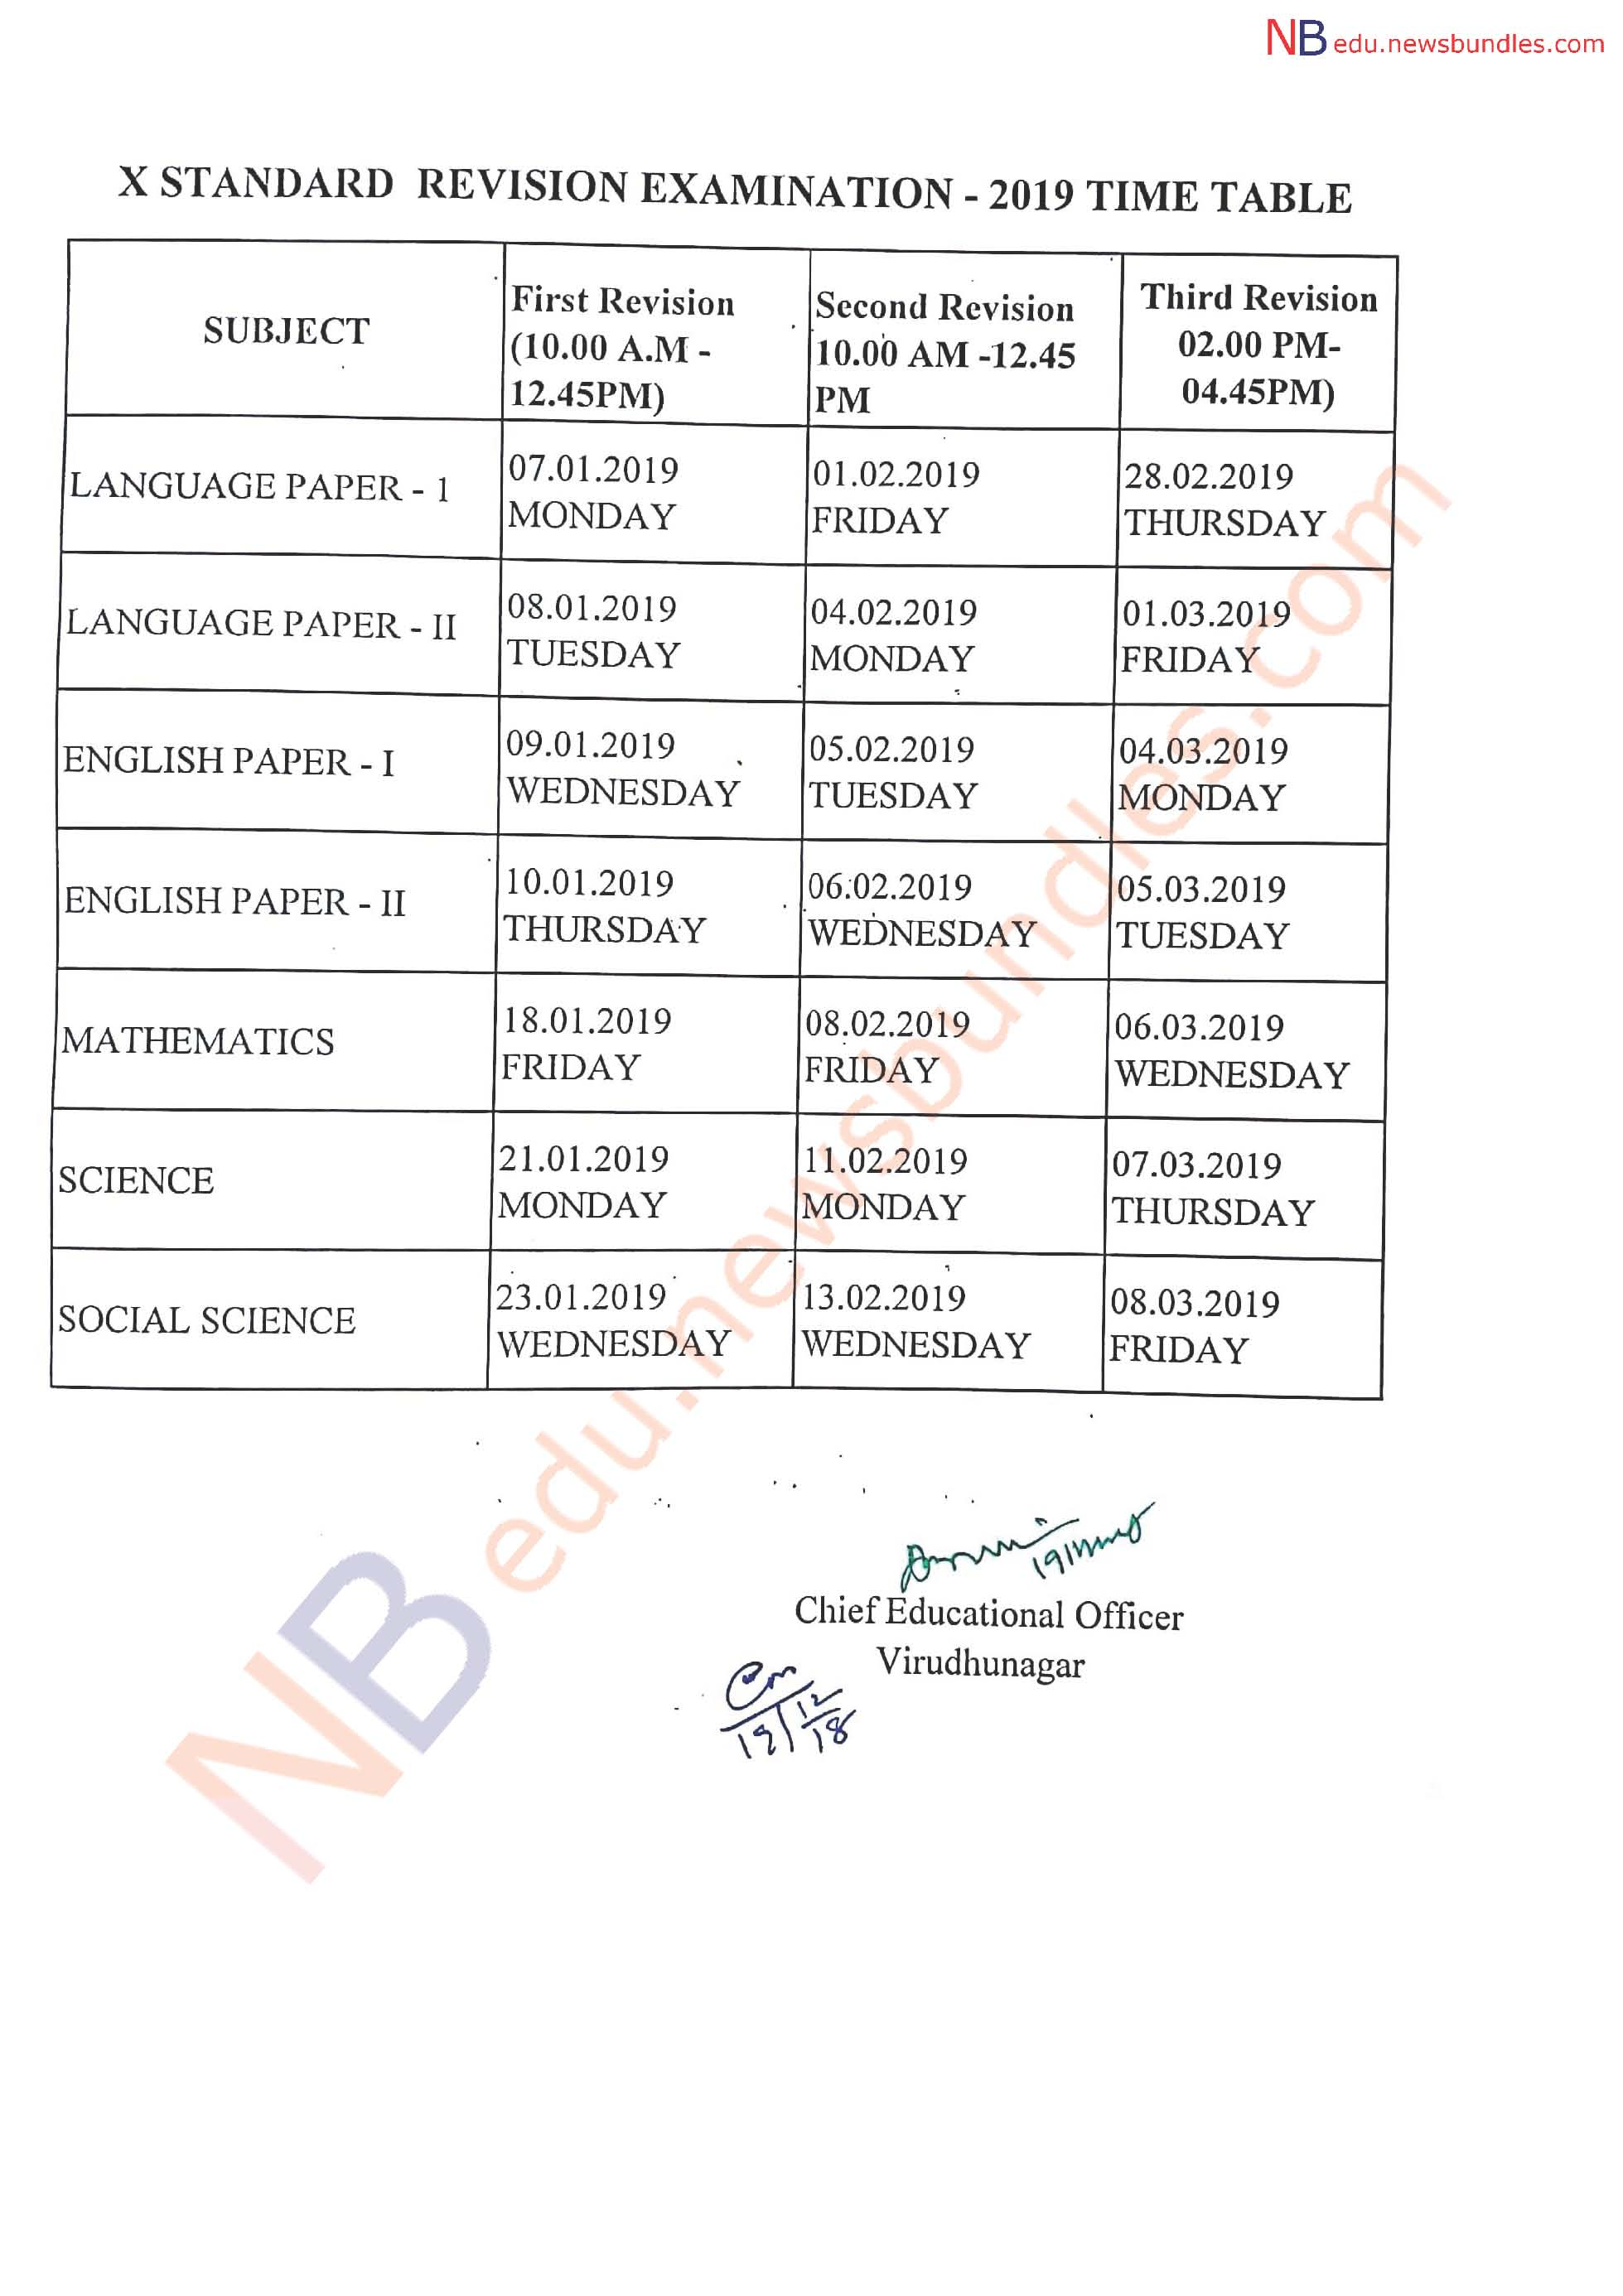 Virudhunagar district - 10th, 11th, 12th First Revision Test 2019 - Time Table Published